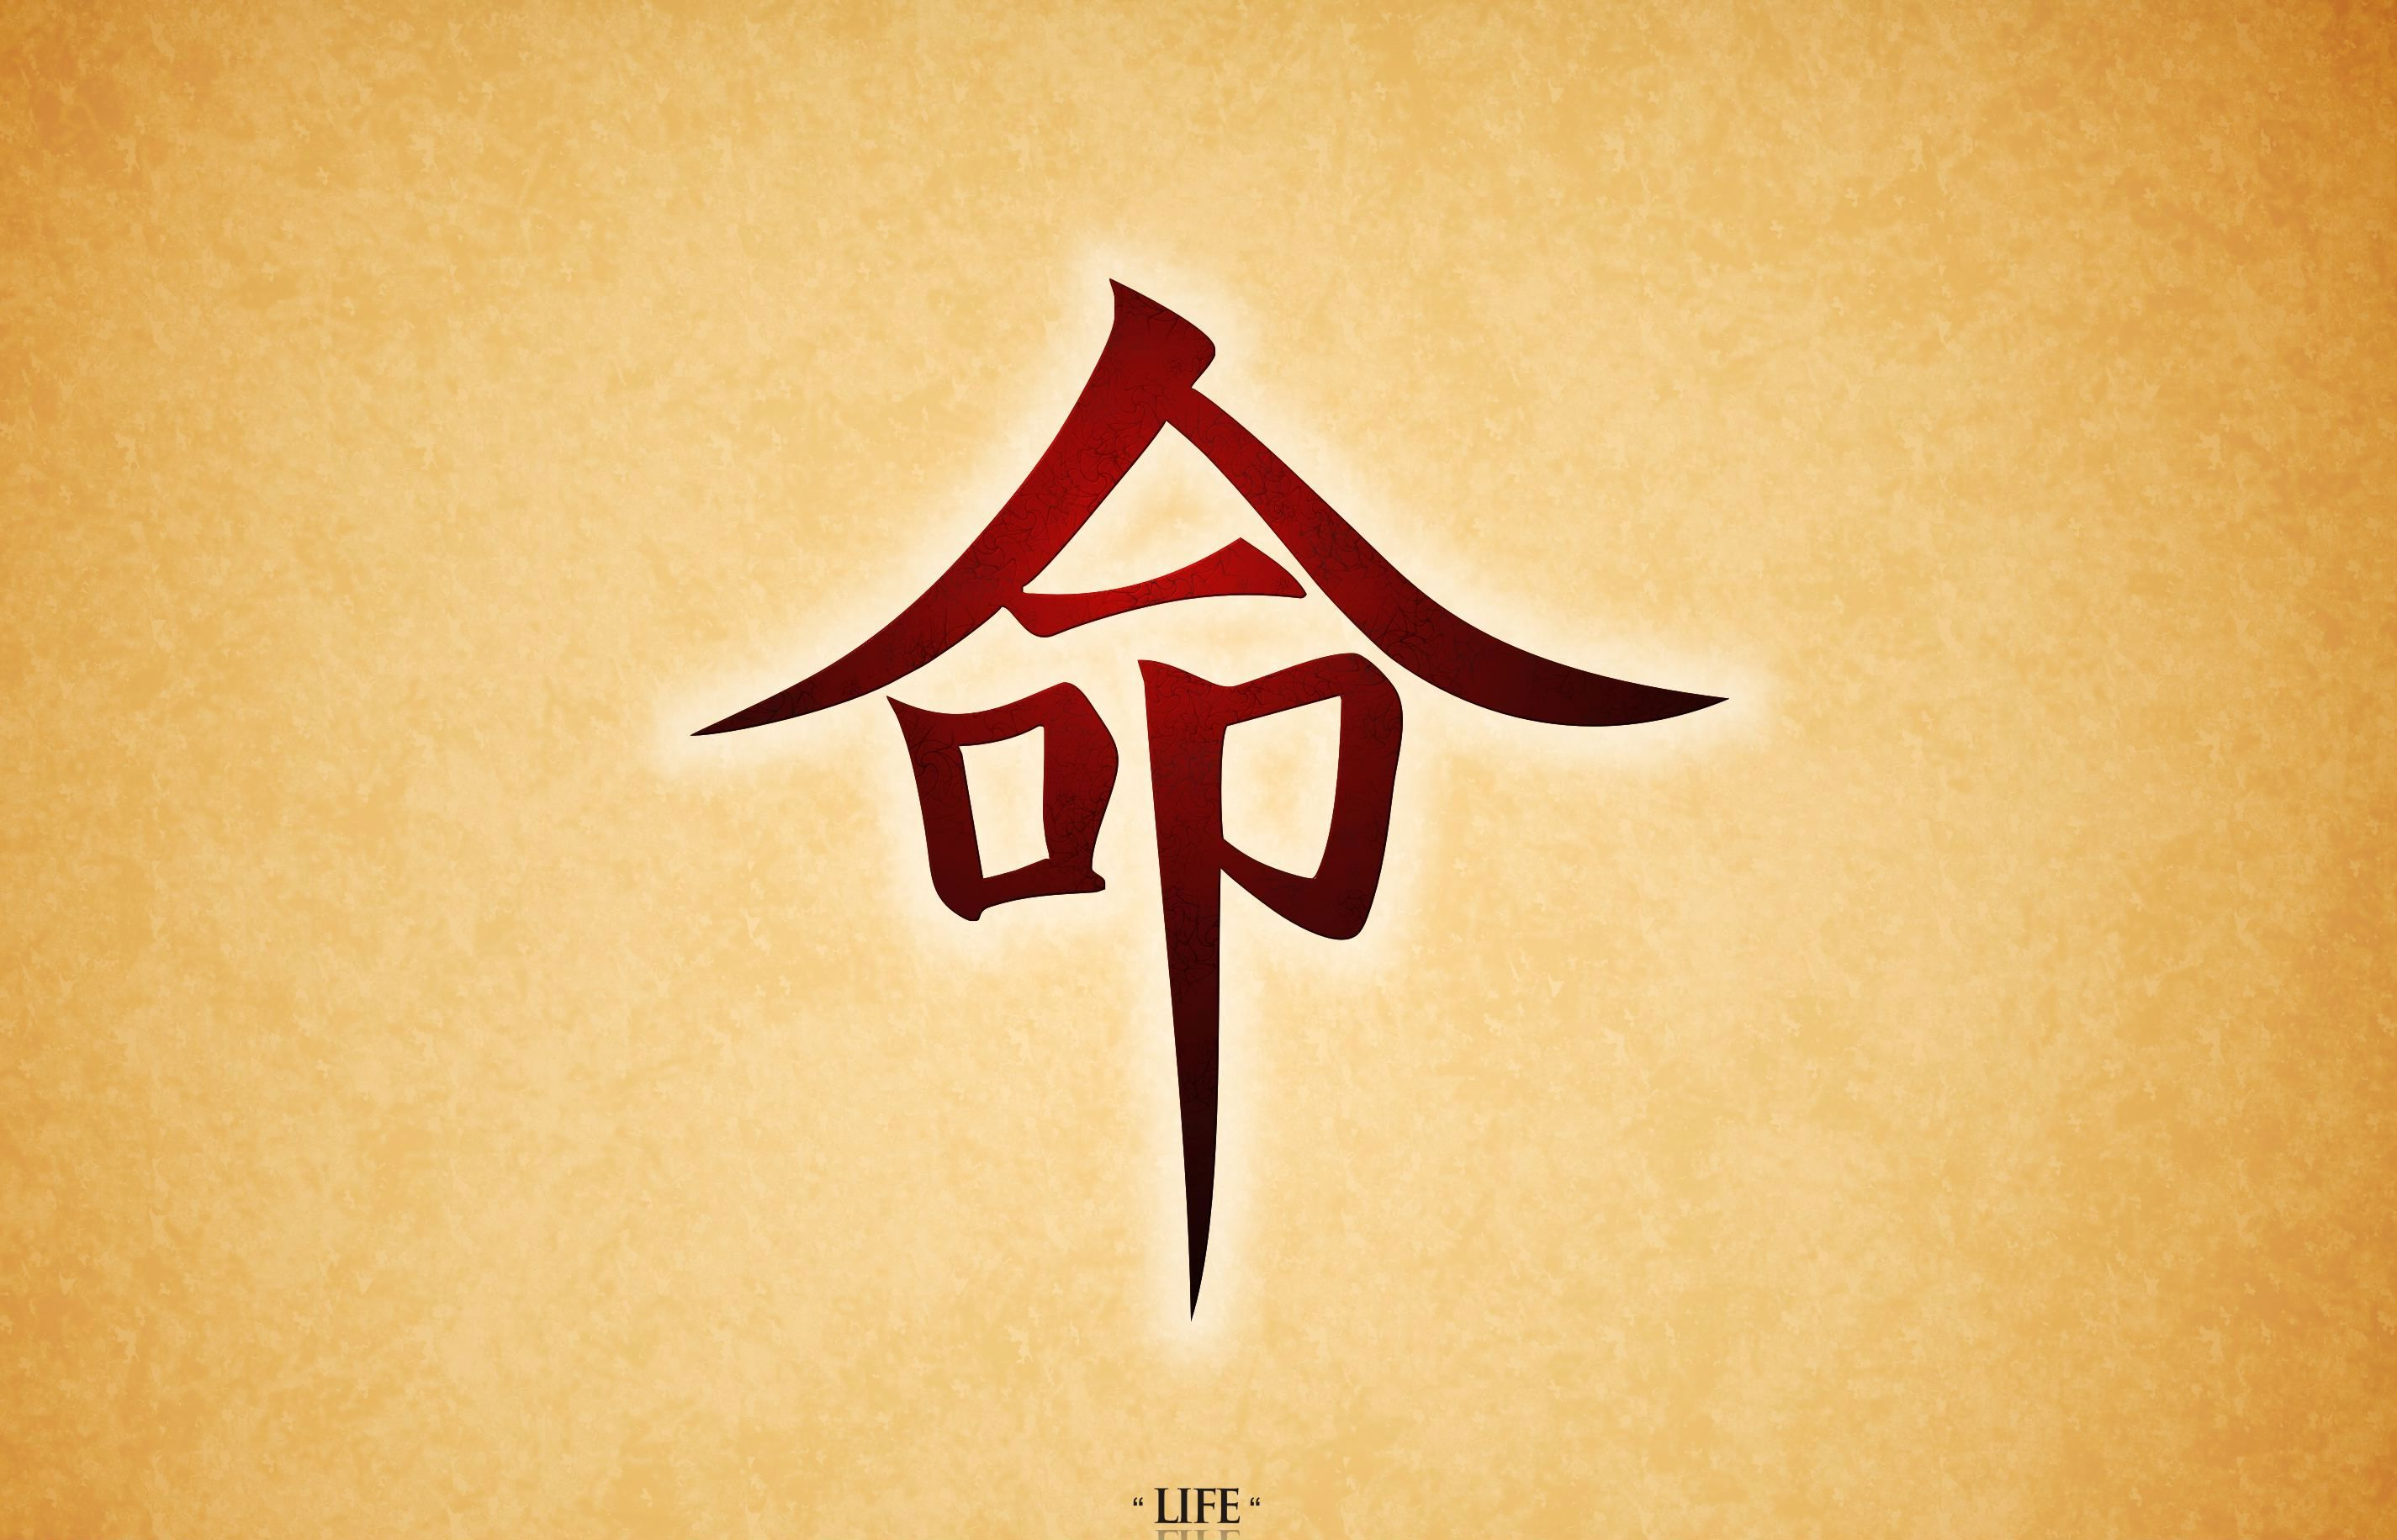 2850x1831 Calligraphy Wallpapers HD | PixelsTalk.Net